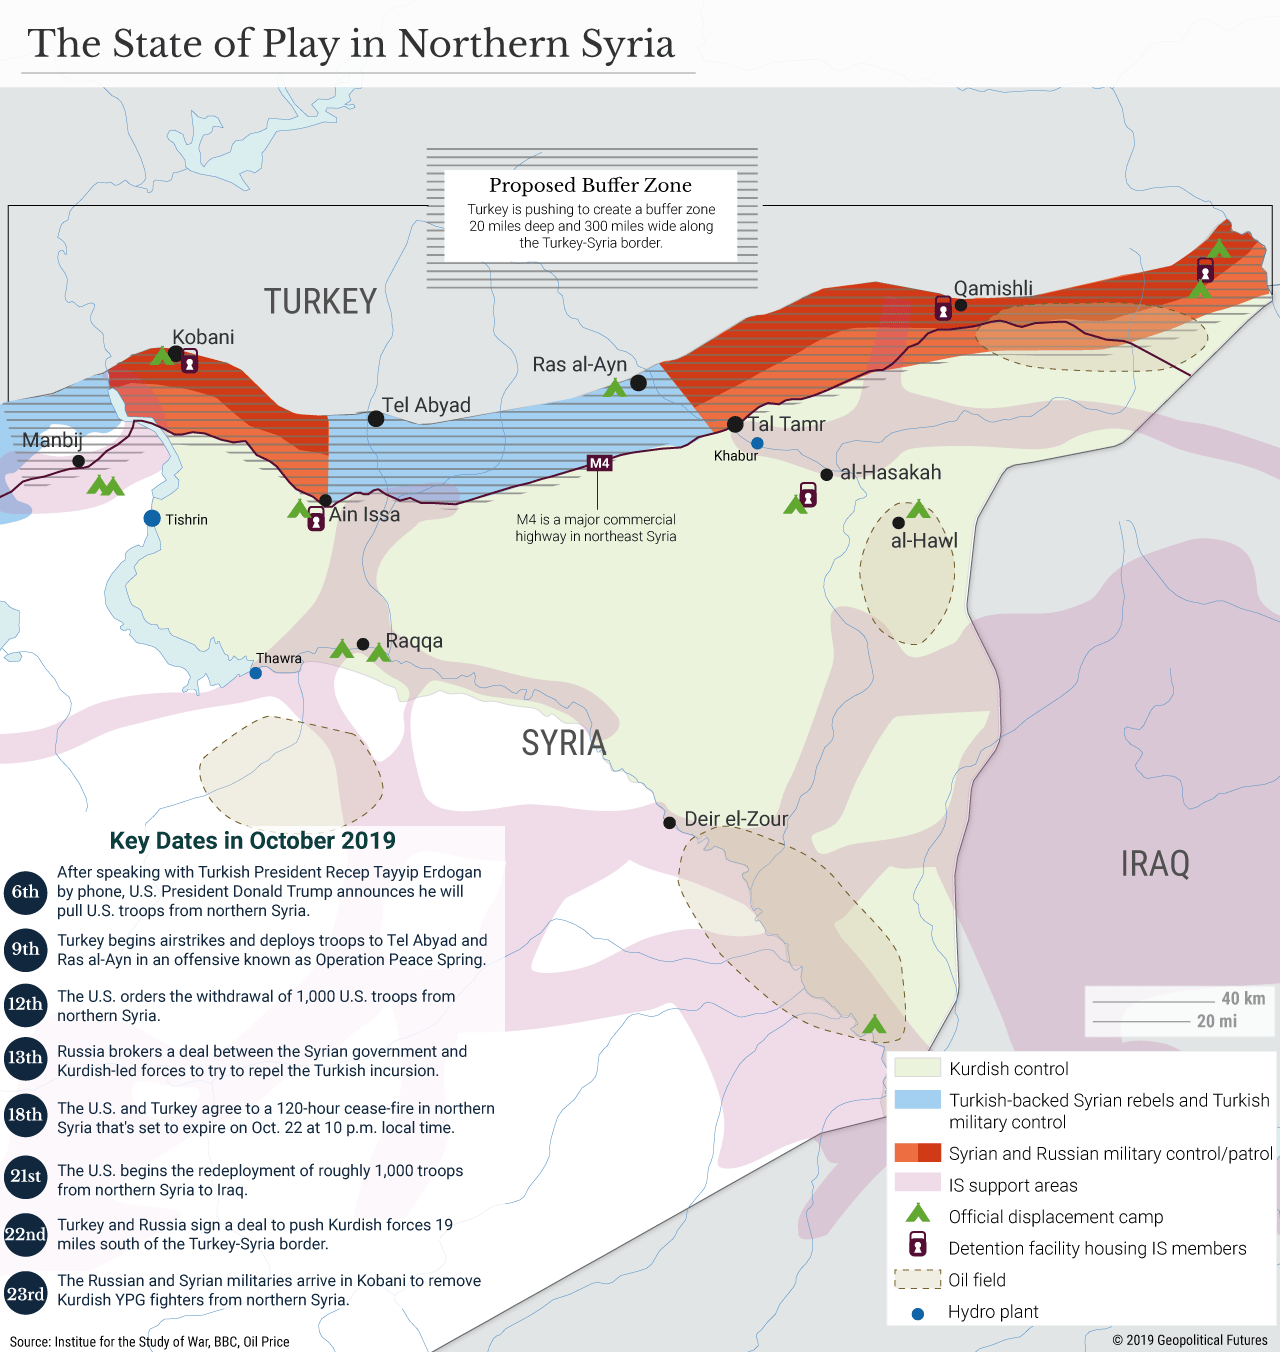 The State of Play in Northern Syria